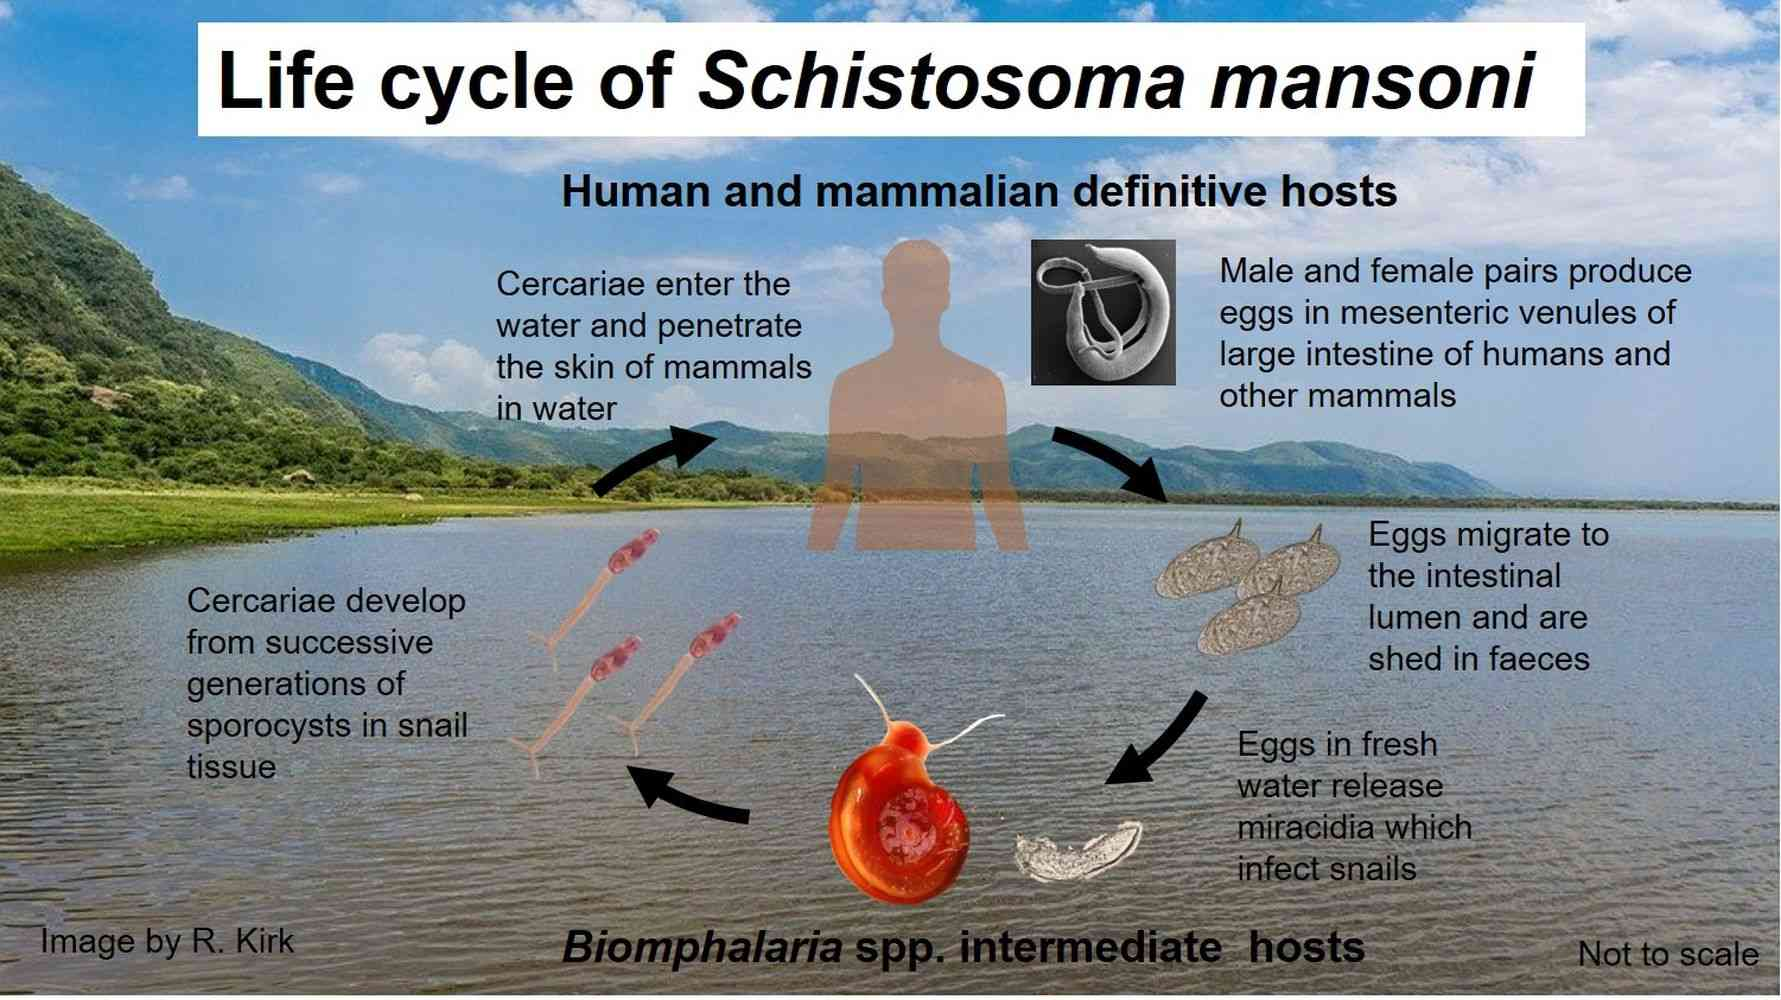 Life cycle of Schistosoma mansoni - an agent of human schistosomiasis - Human schistosomiasis is an acute and chronic disease that affects over 200 million people, prevalent in tropical and subtropical areas of the world.